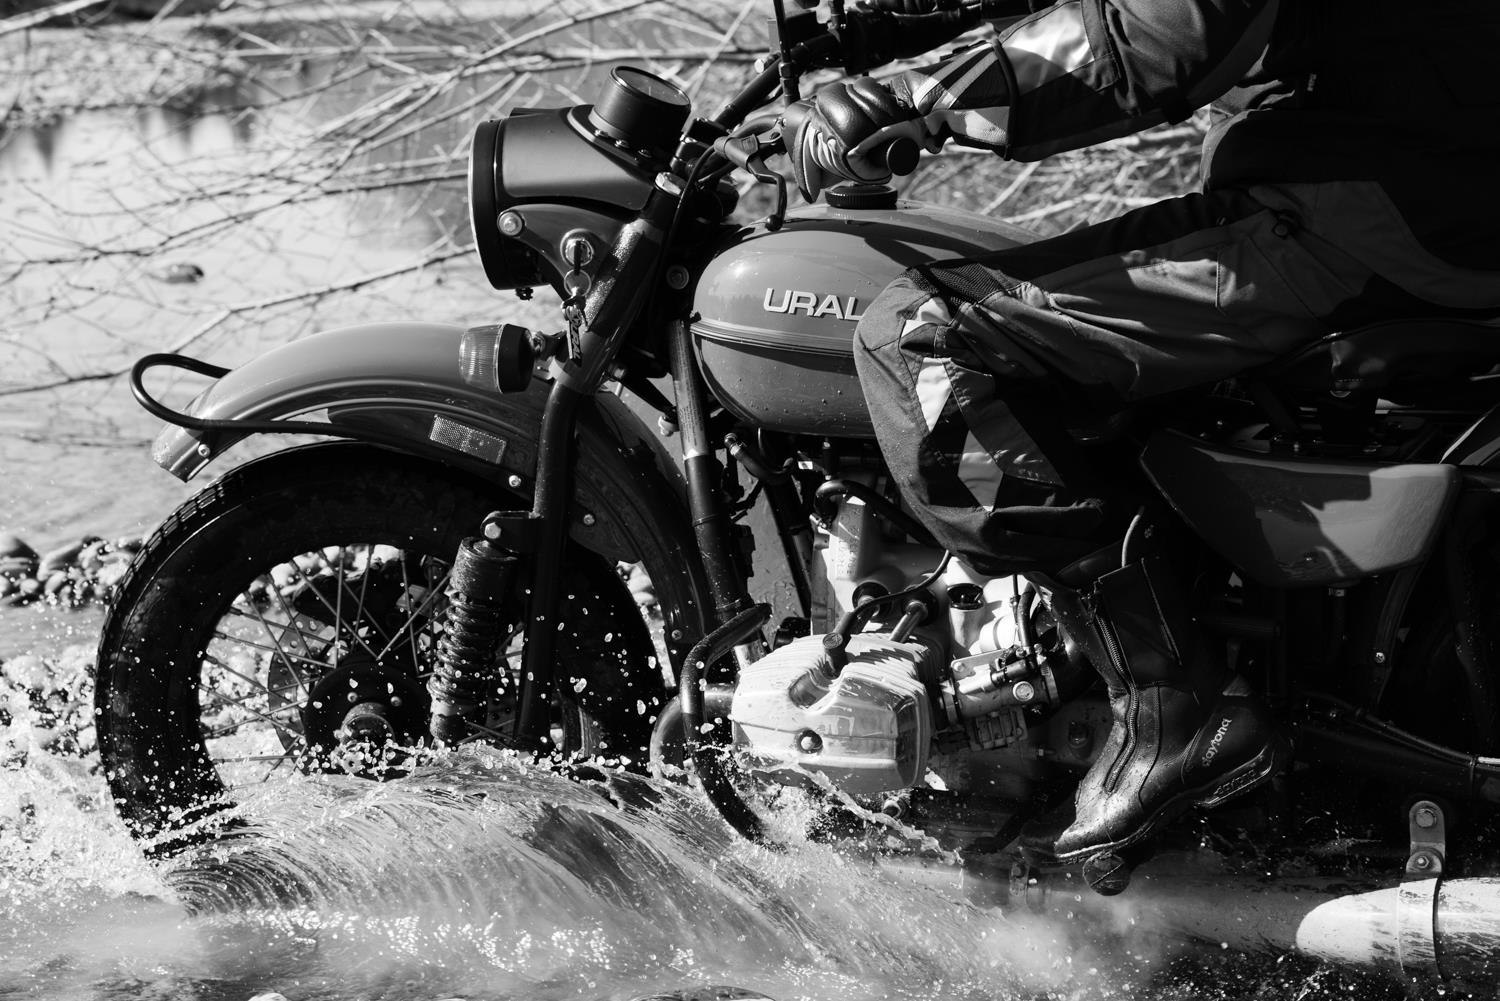 16Gear_Ural_8974-LR-Copy